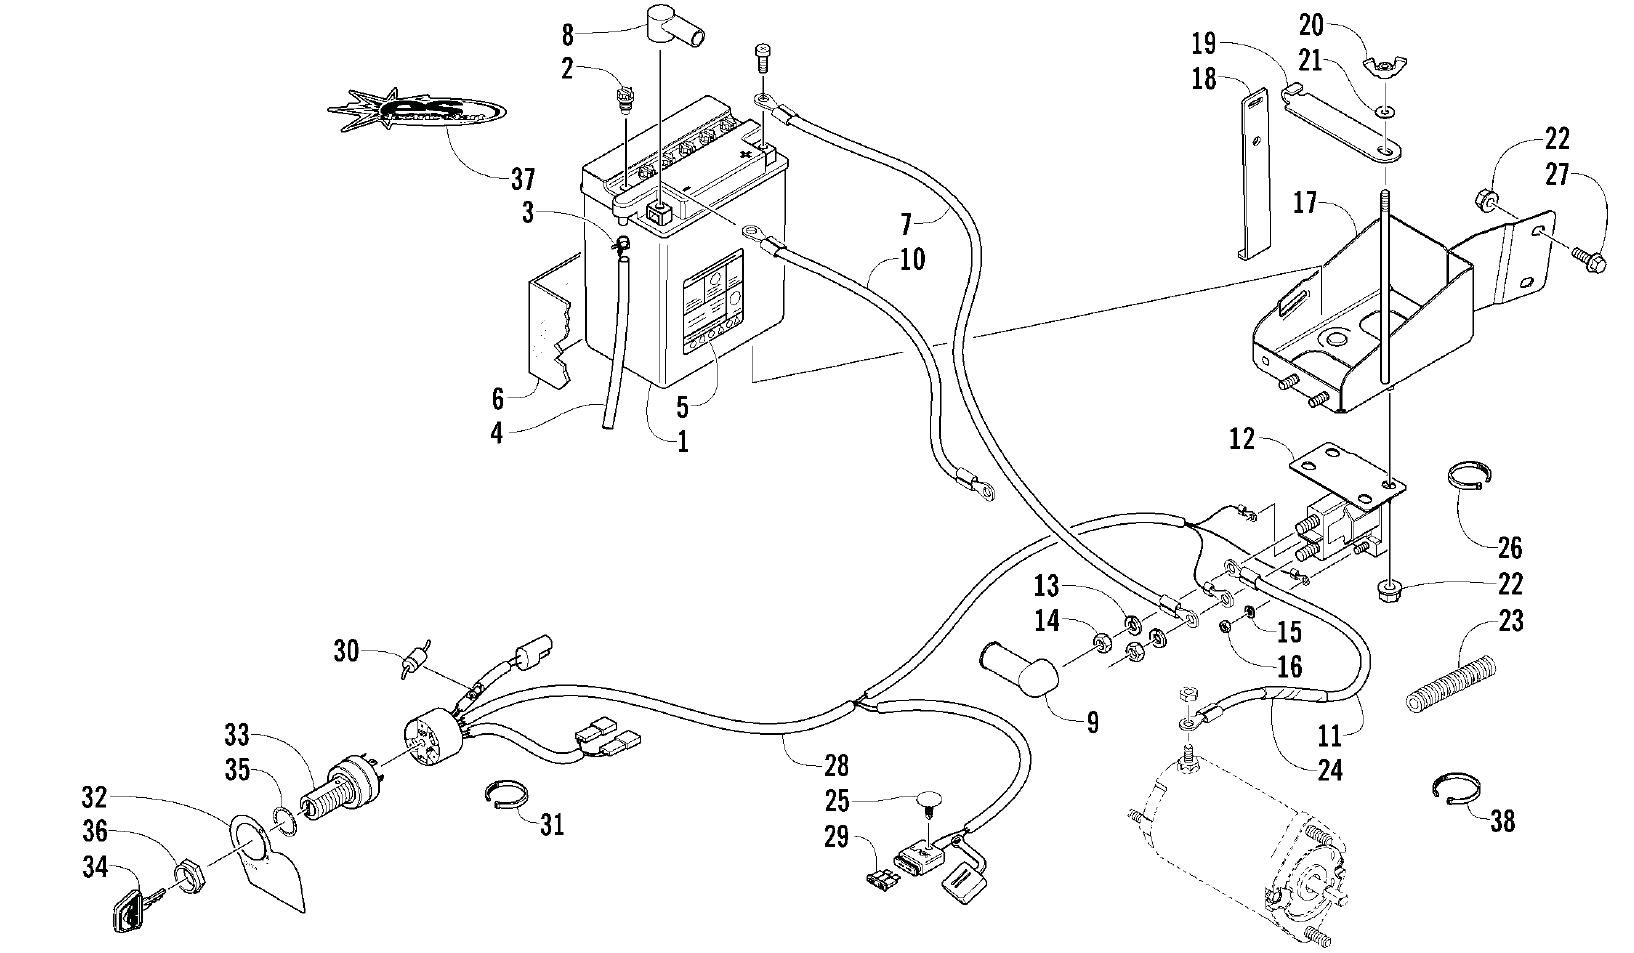 Arctic Cat 500 4x4 Parts Parts Wiring Diagram Images